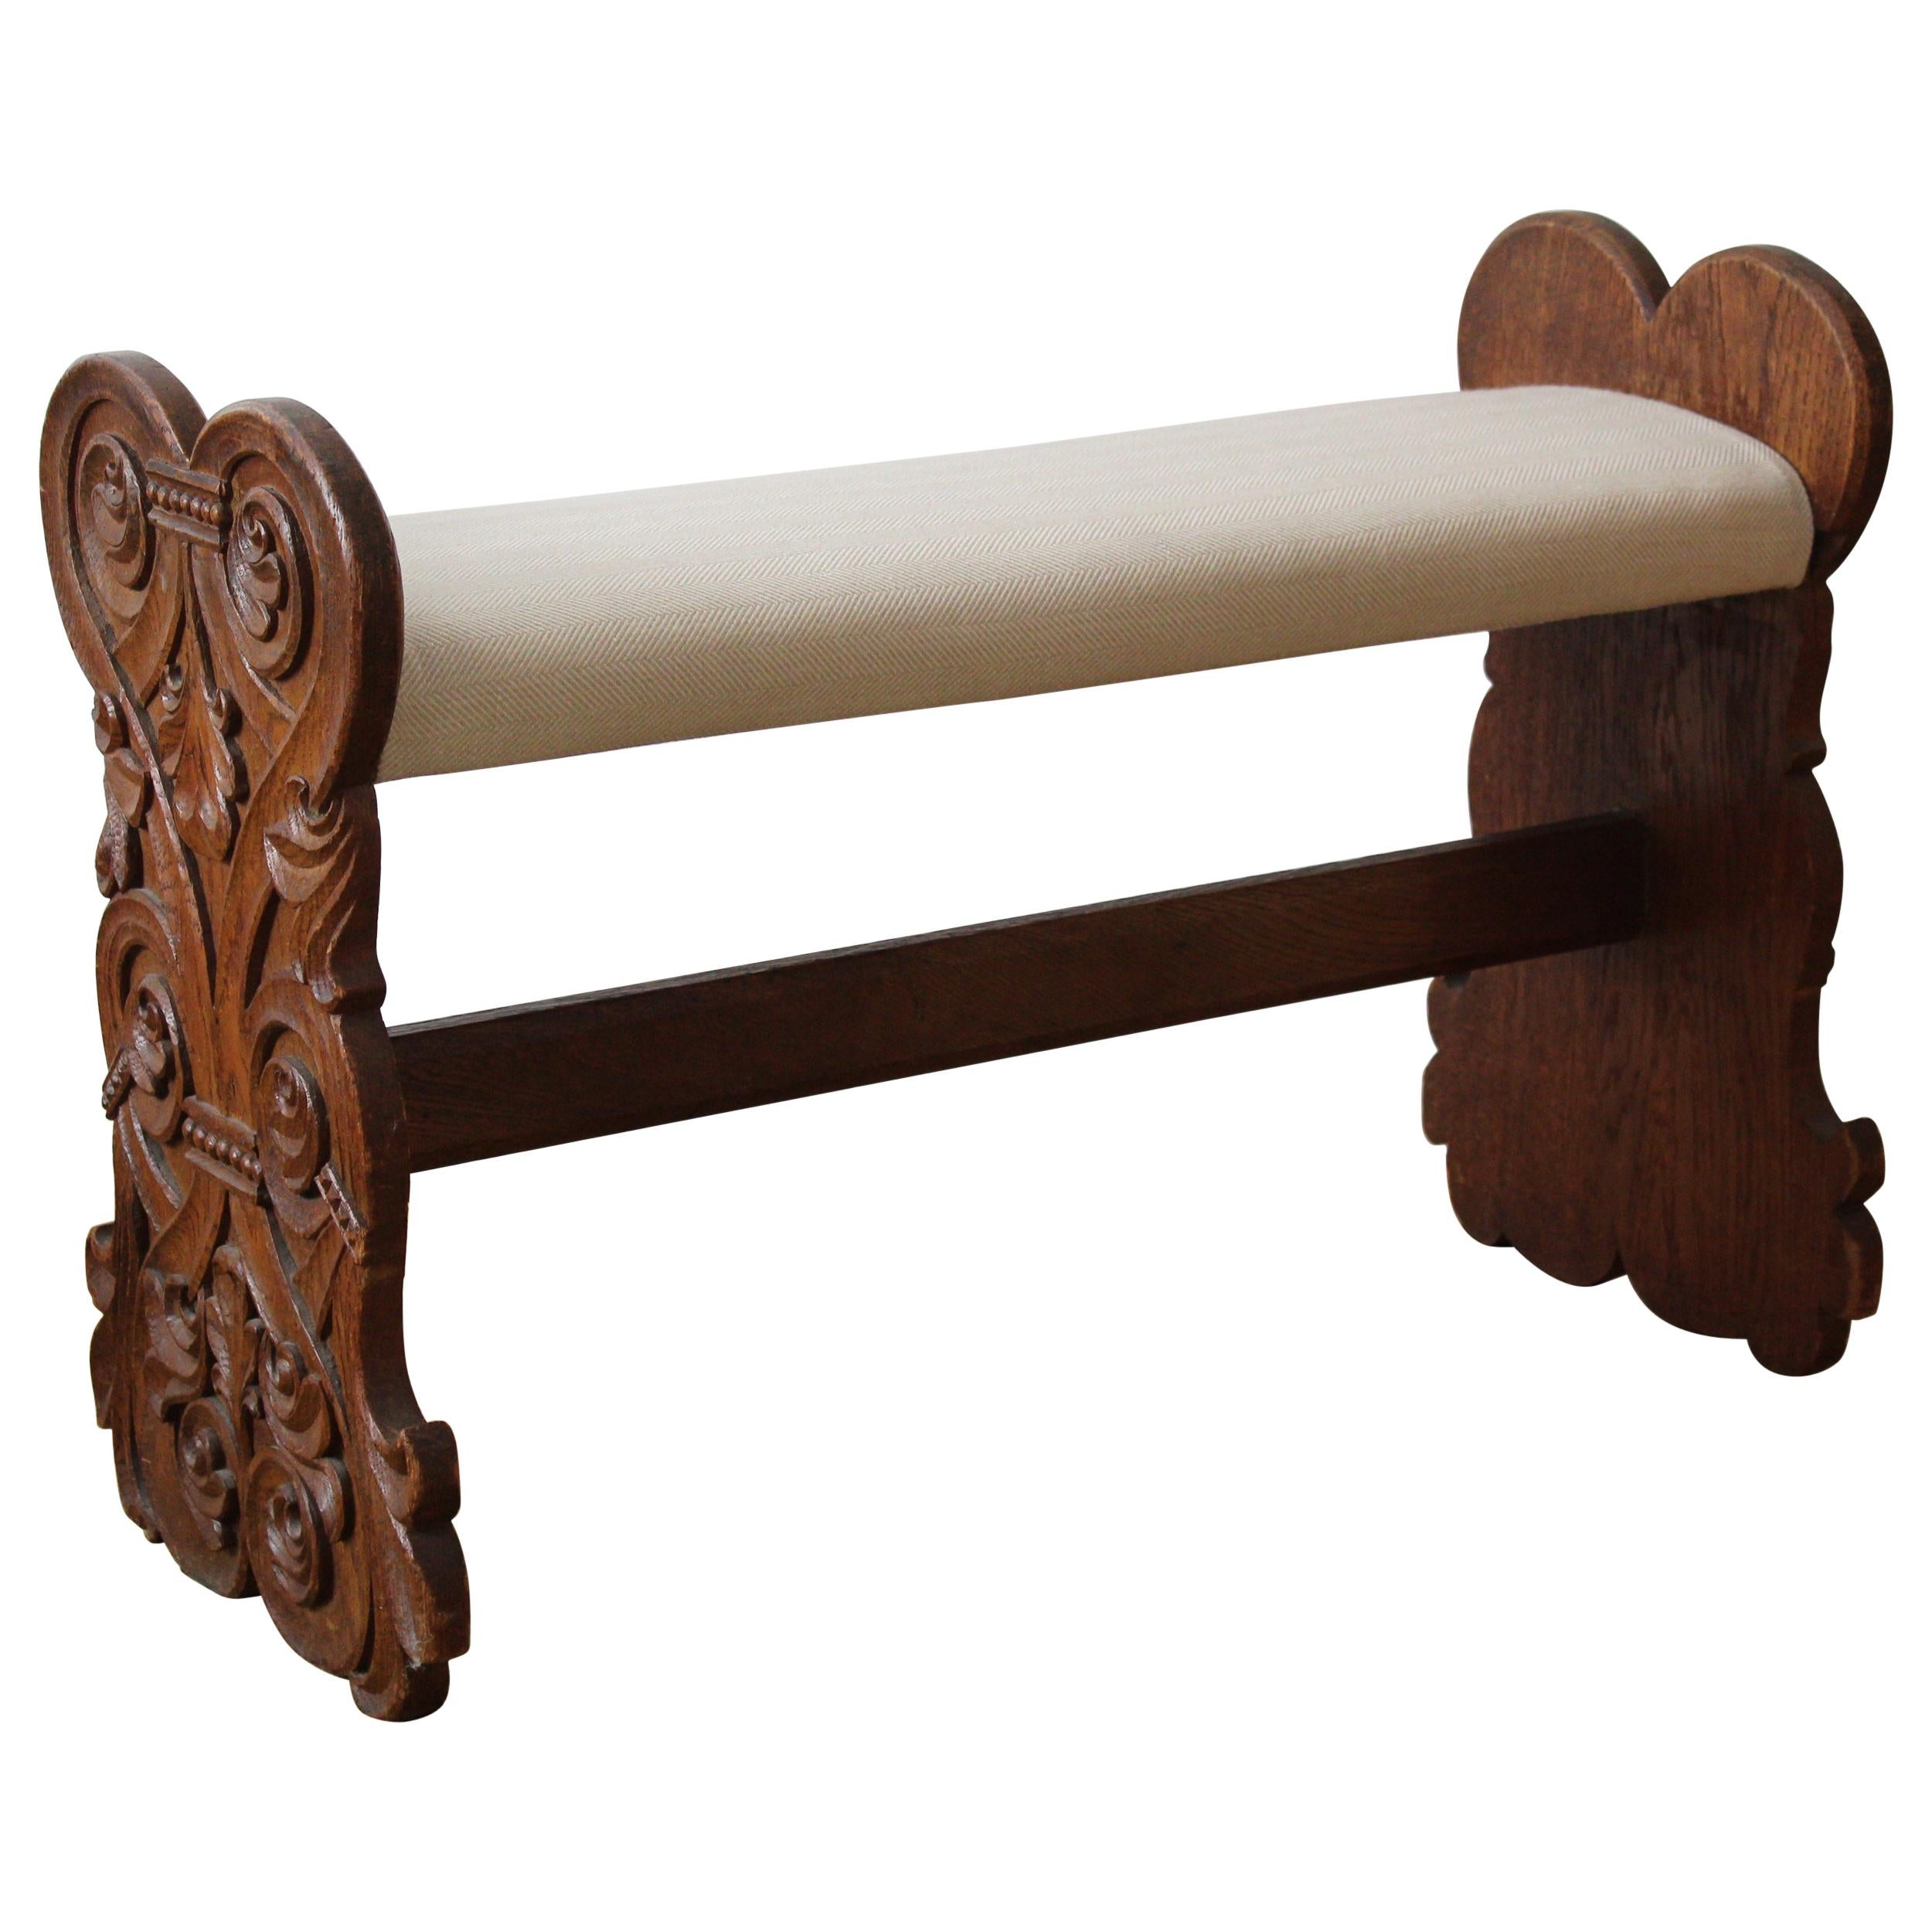 Swedish Craft, Bench, Stained Oak, Fabric, Sweden, Early 20th Century